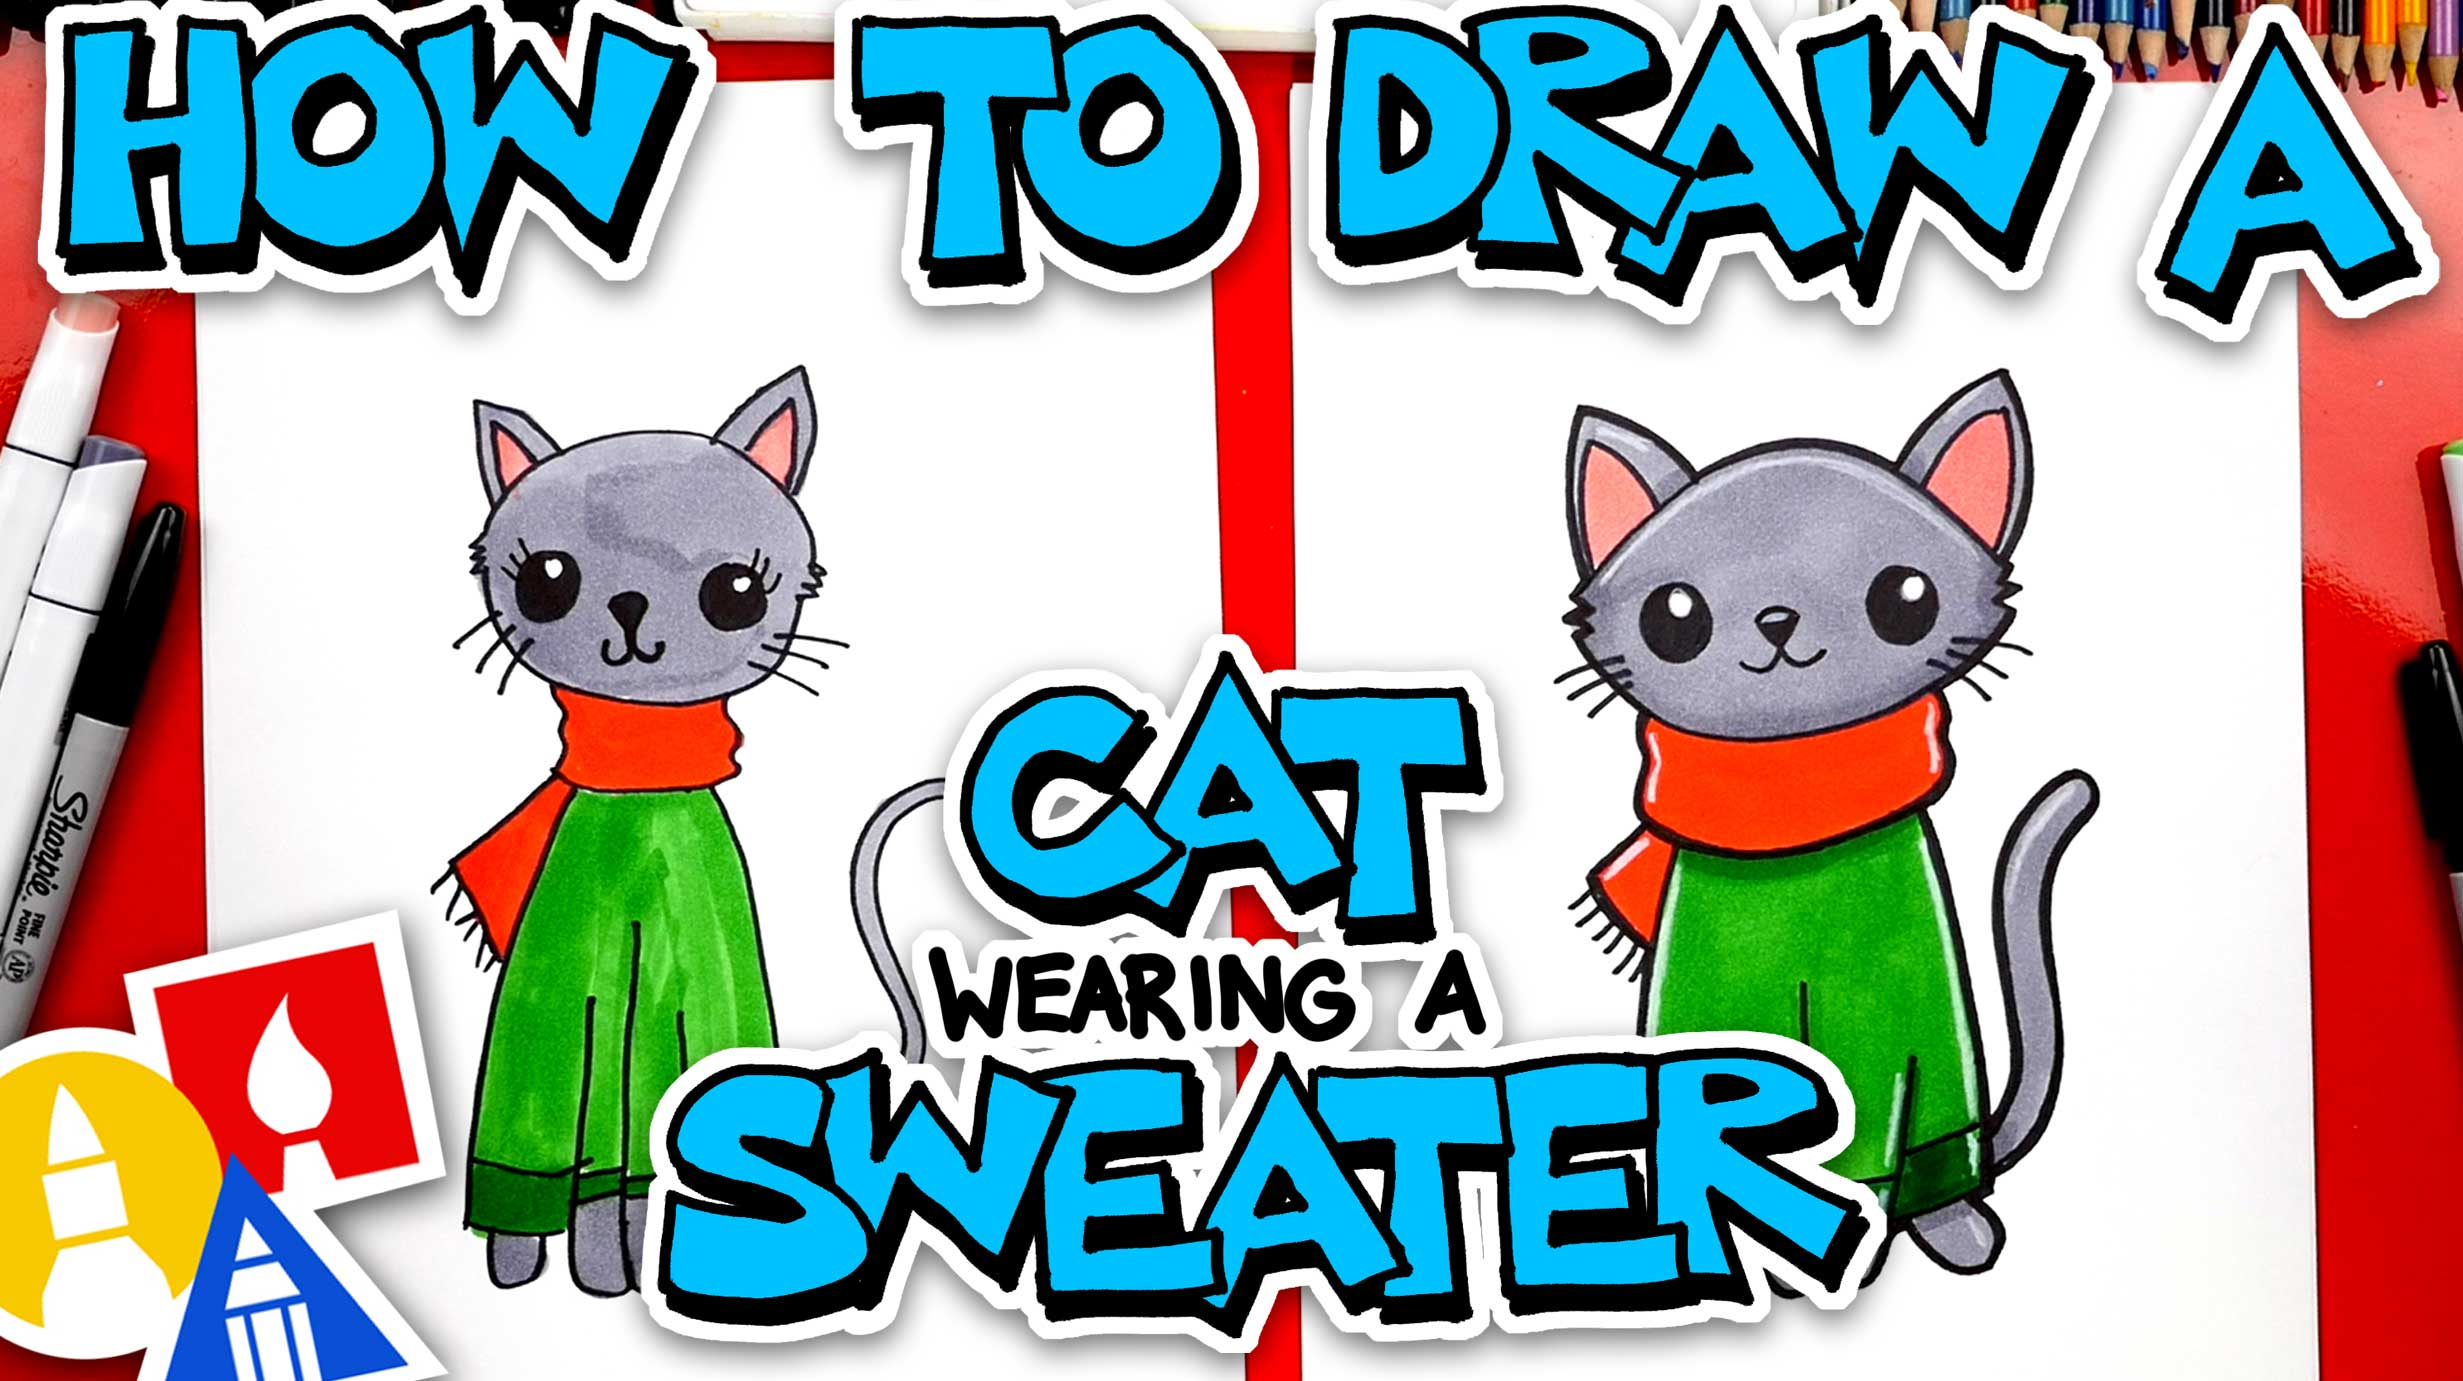 How To Draw A Christmas Cat Wearing A Sweater - Art For ...